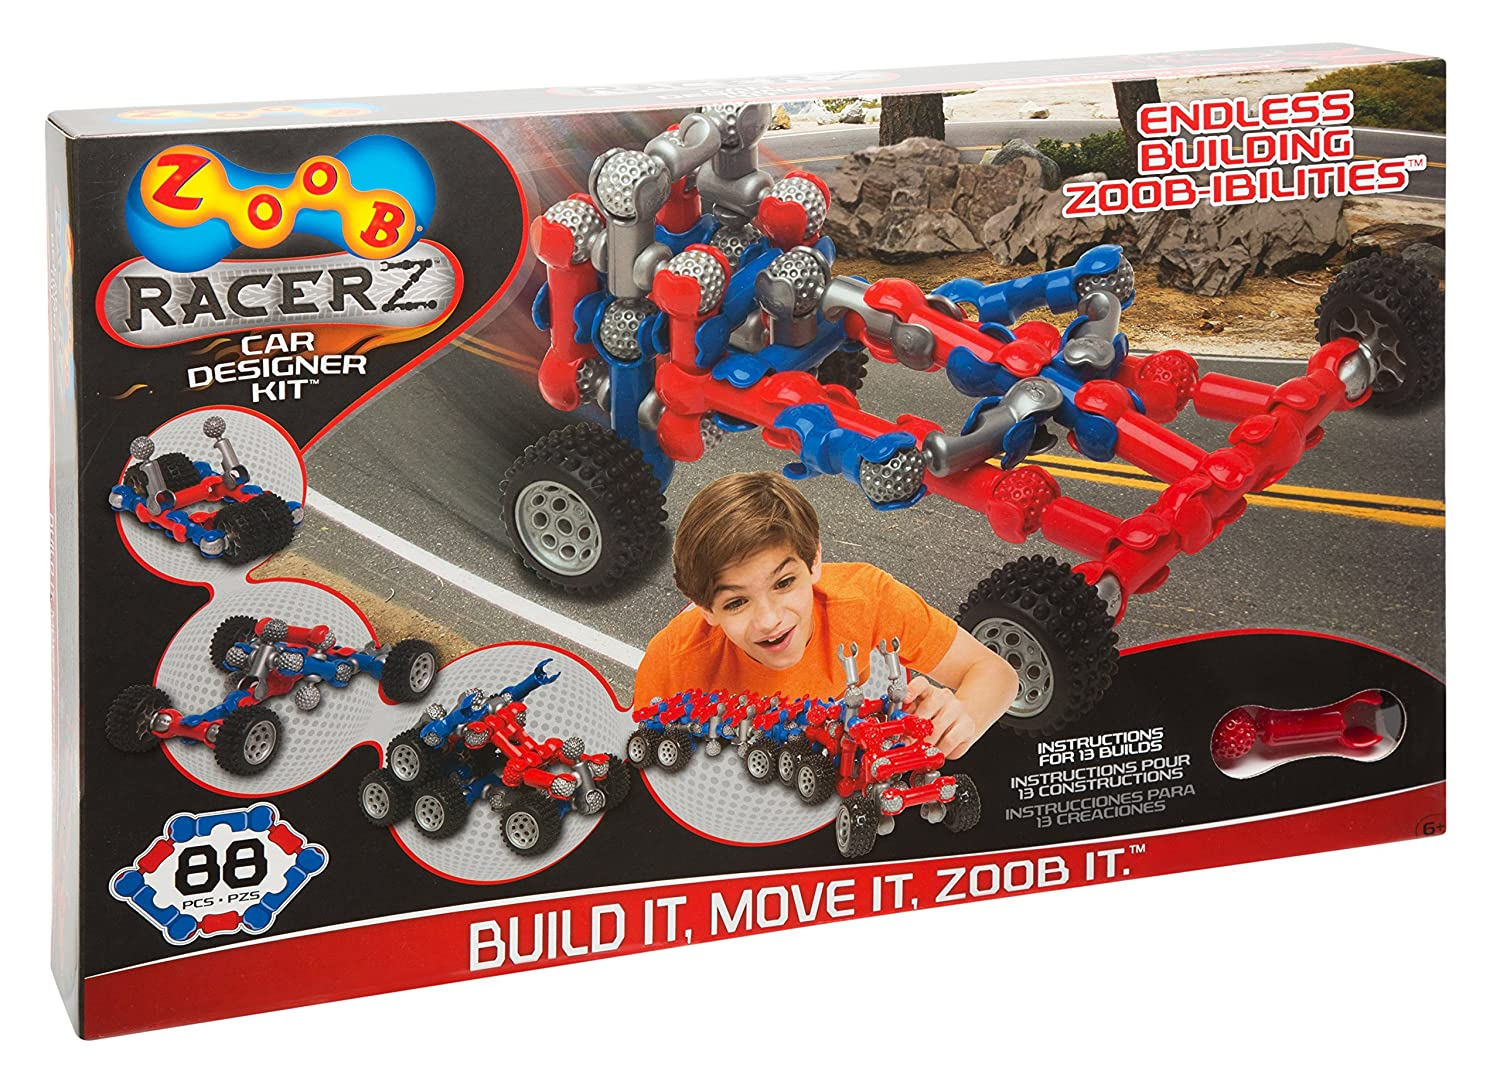 image of a ZOOB car designer kit in a box